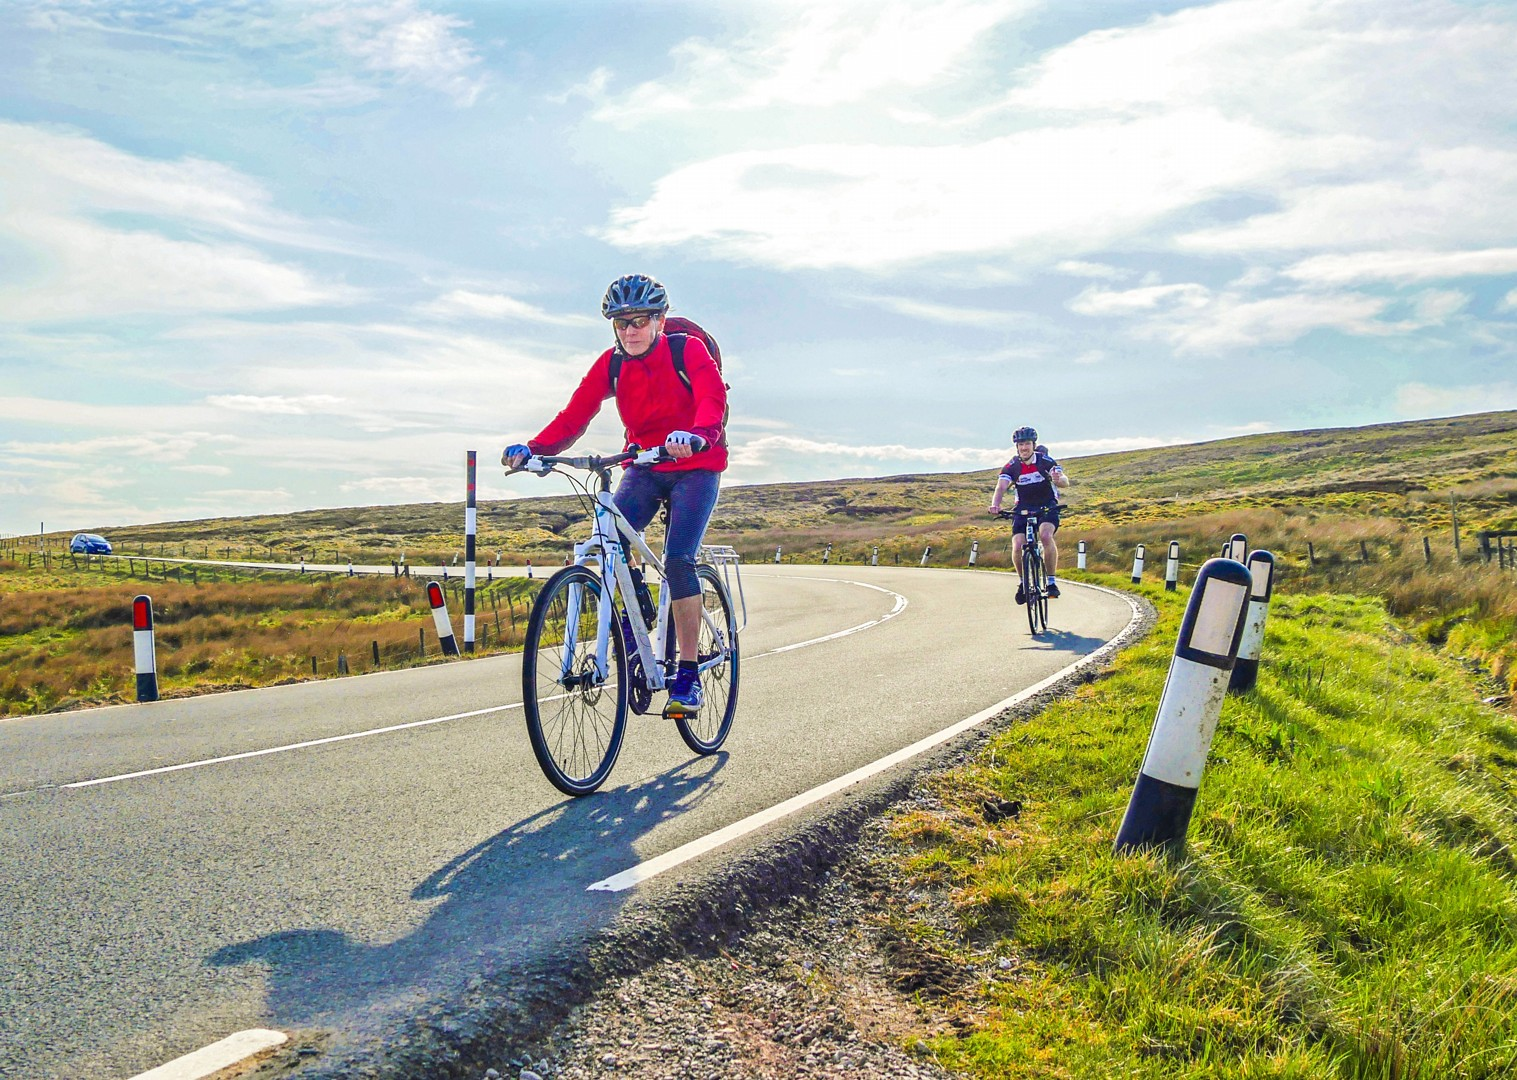 uk-cycle-fun-sunny-group-holiday-supported-easy.jpg - UK - C2C - Coast to Coast - Supported Leisure Cycling Holiday - Leisure Cycling